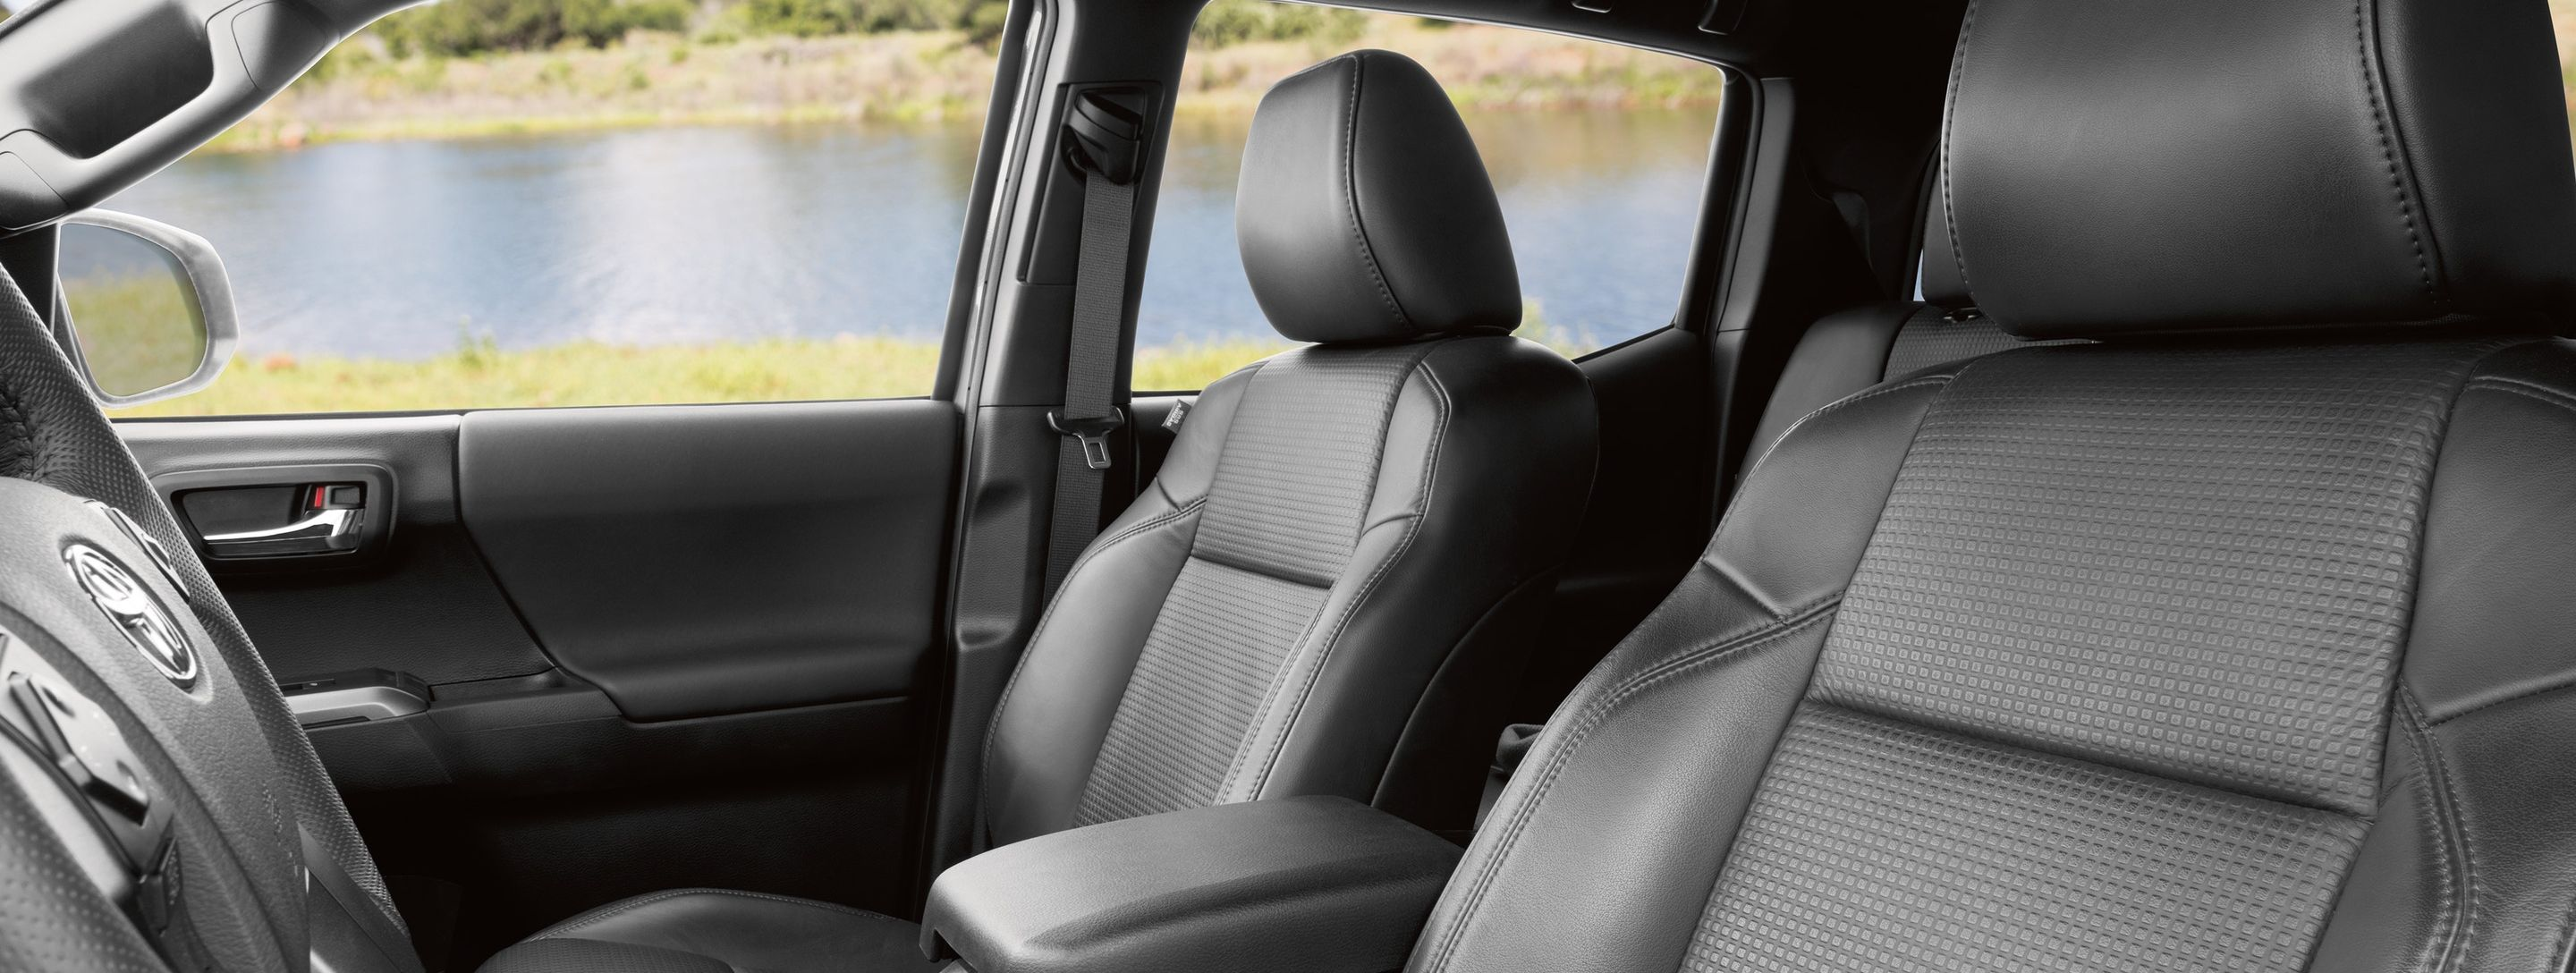 Accommodating Front Row of the 2019 Toyota Tacoma